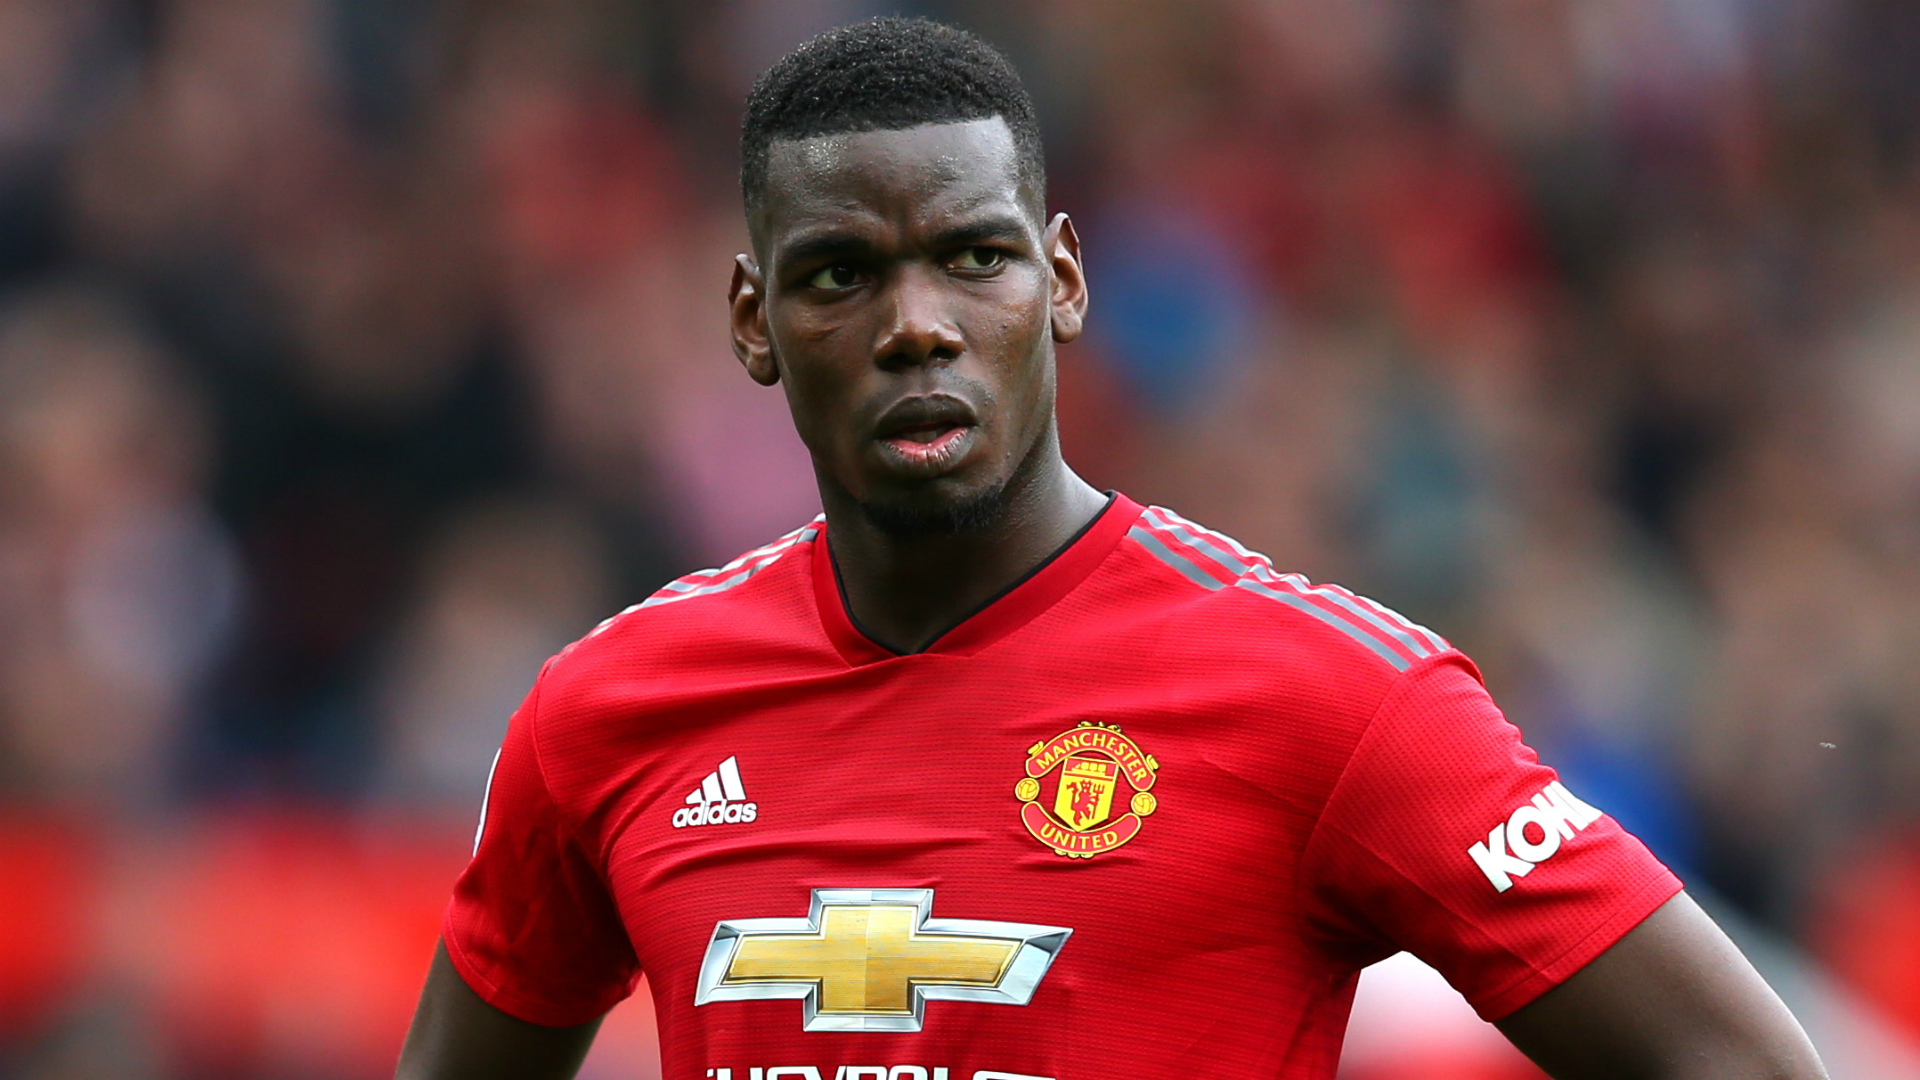 Rumour Has It: Pogba race intensifies as Man United prepare bumper new contract